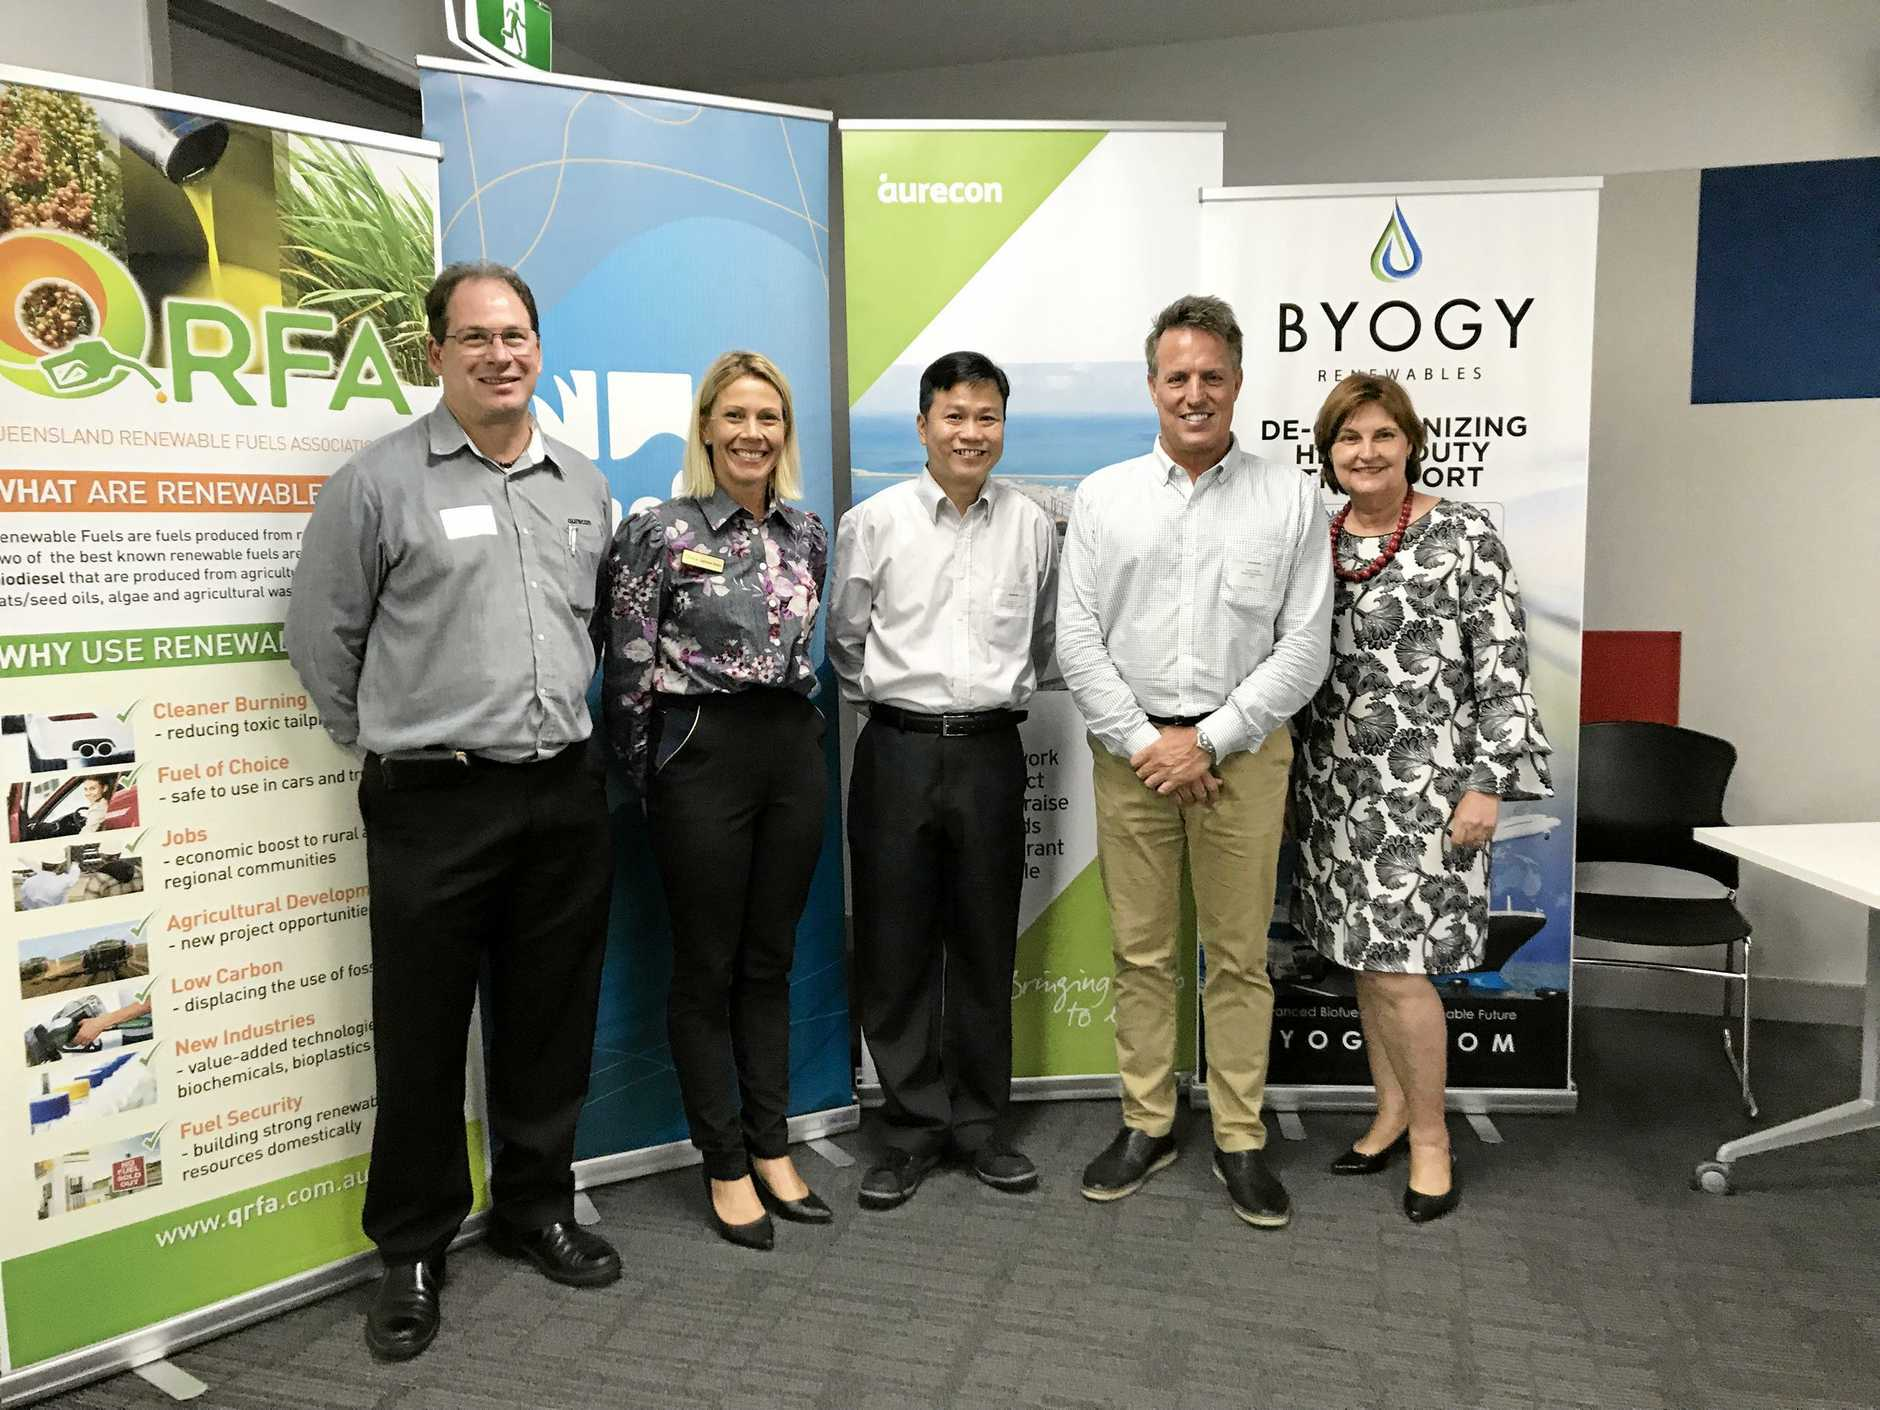 SWEET MEETING: Stephen Cutting - digital practice manager at Aureco, Larissa Rose - managing director at QRFA, Heng Ho Weng (QUT) - plant manager at Mackay Renewables Bicommodities Pilot Plant, Kevin Weiss - chief executive officer at Byogy Renewables and Julieanne Gilbert - Member for Mackay